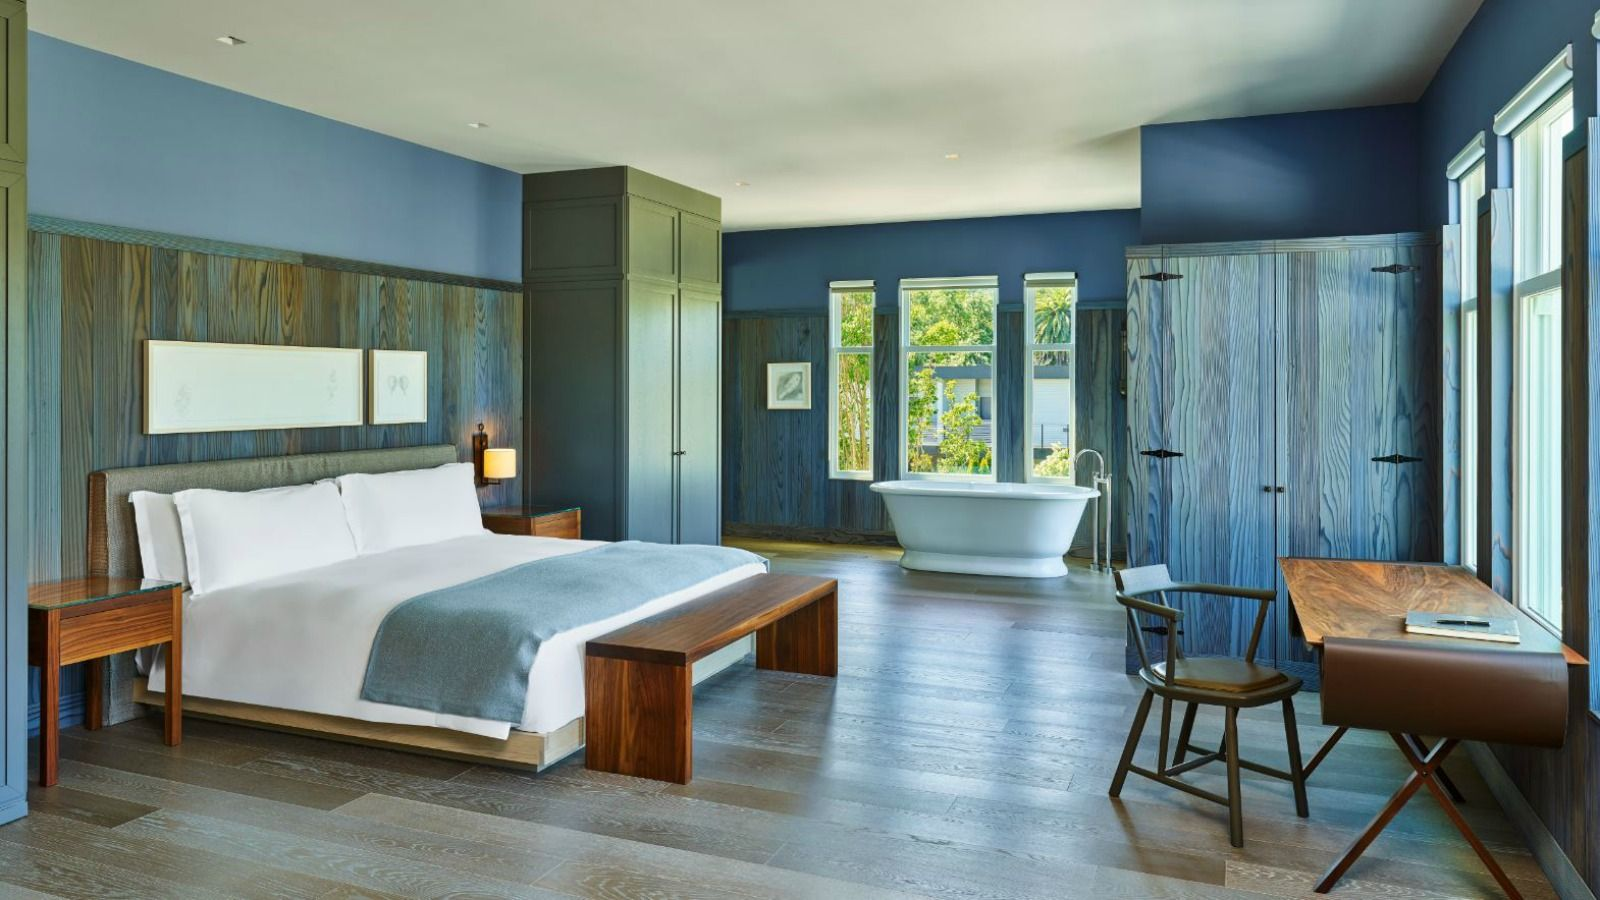 Junior Suite with Deck accommodations at Las Alcobas, A Luxury Collection Hotel, Napa Valley